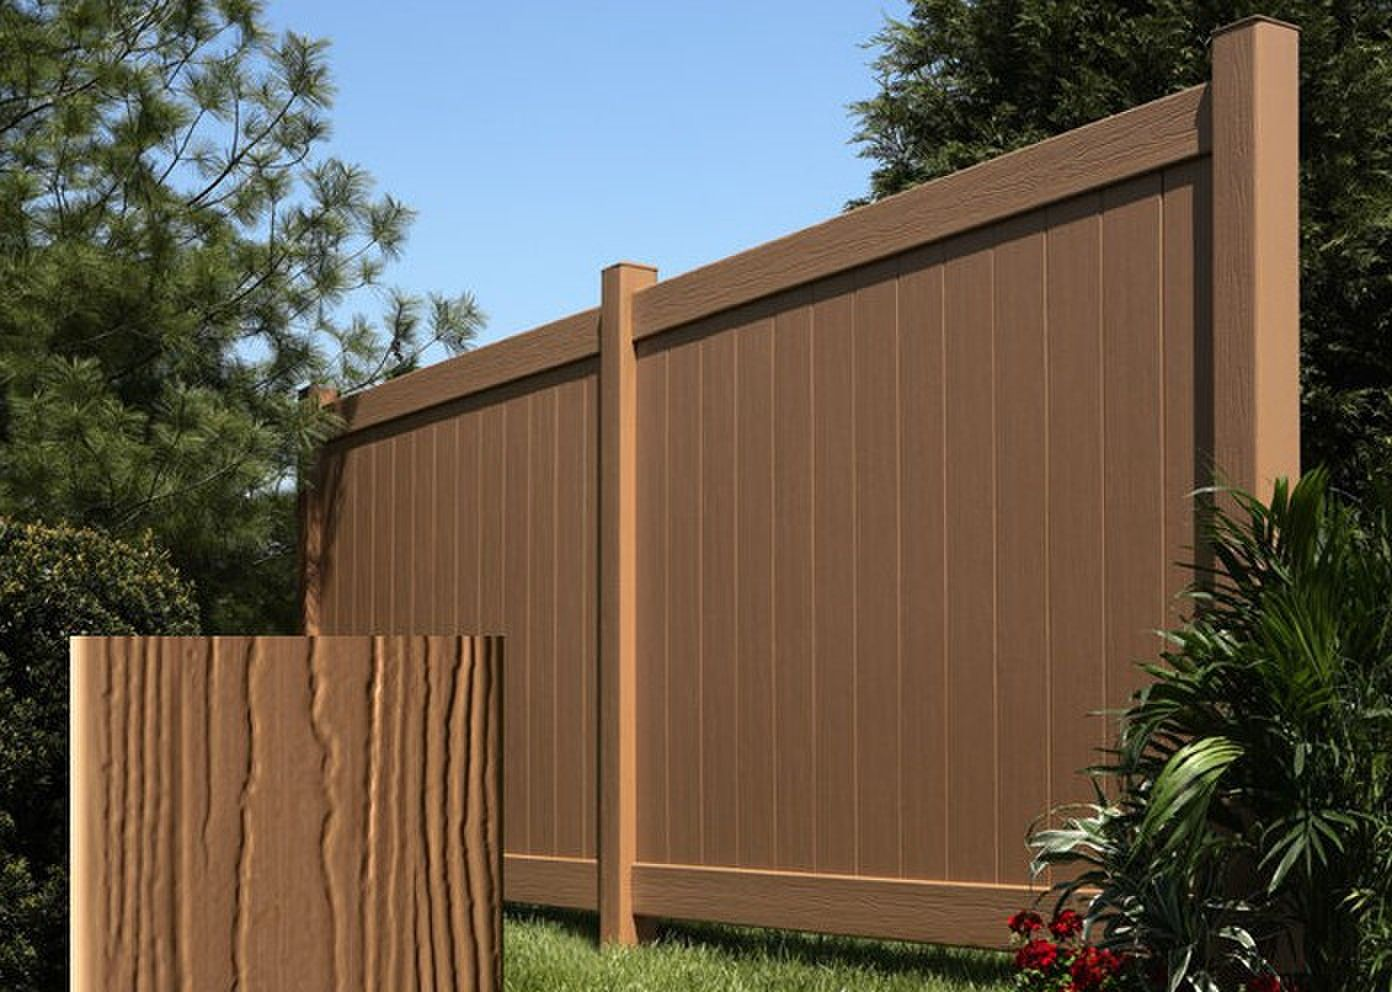 Qizhen black wood plastic composite fence outdoor fence garden qizhen black wood plastic composite fence outdoor fence garden fence privacy fence wpc fence picket fence panels composite fence design baanklon Gallery